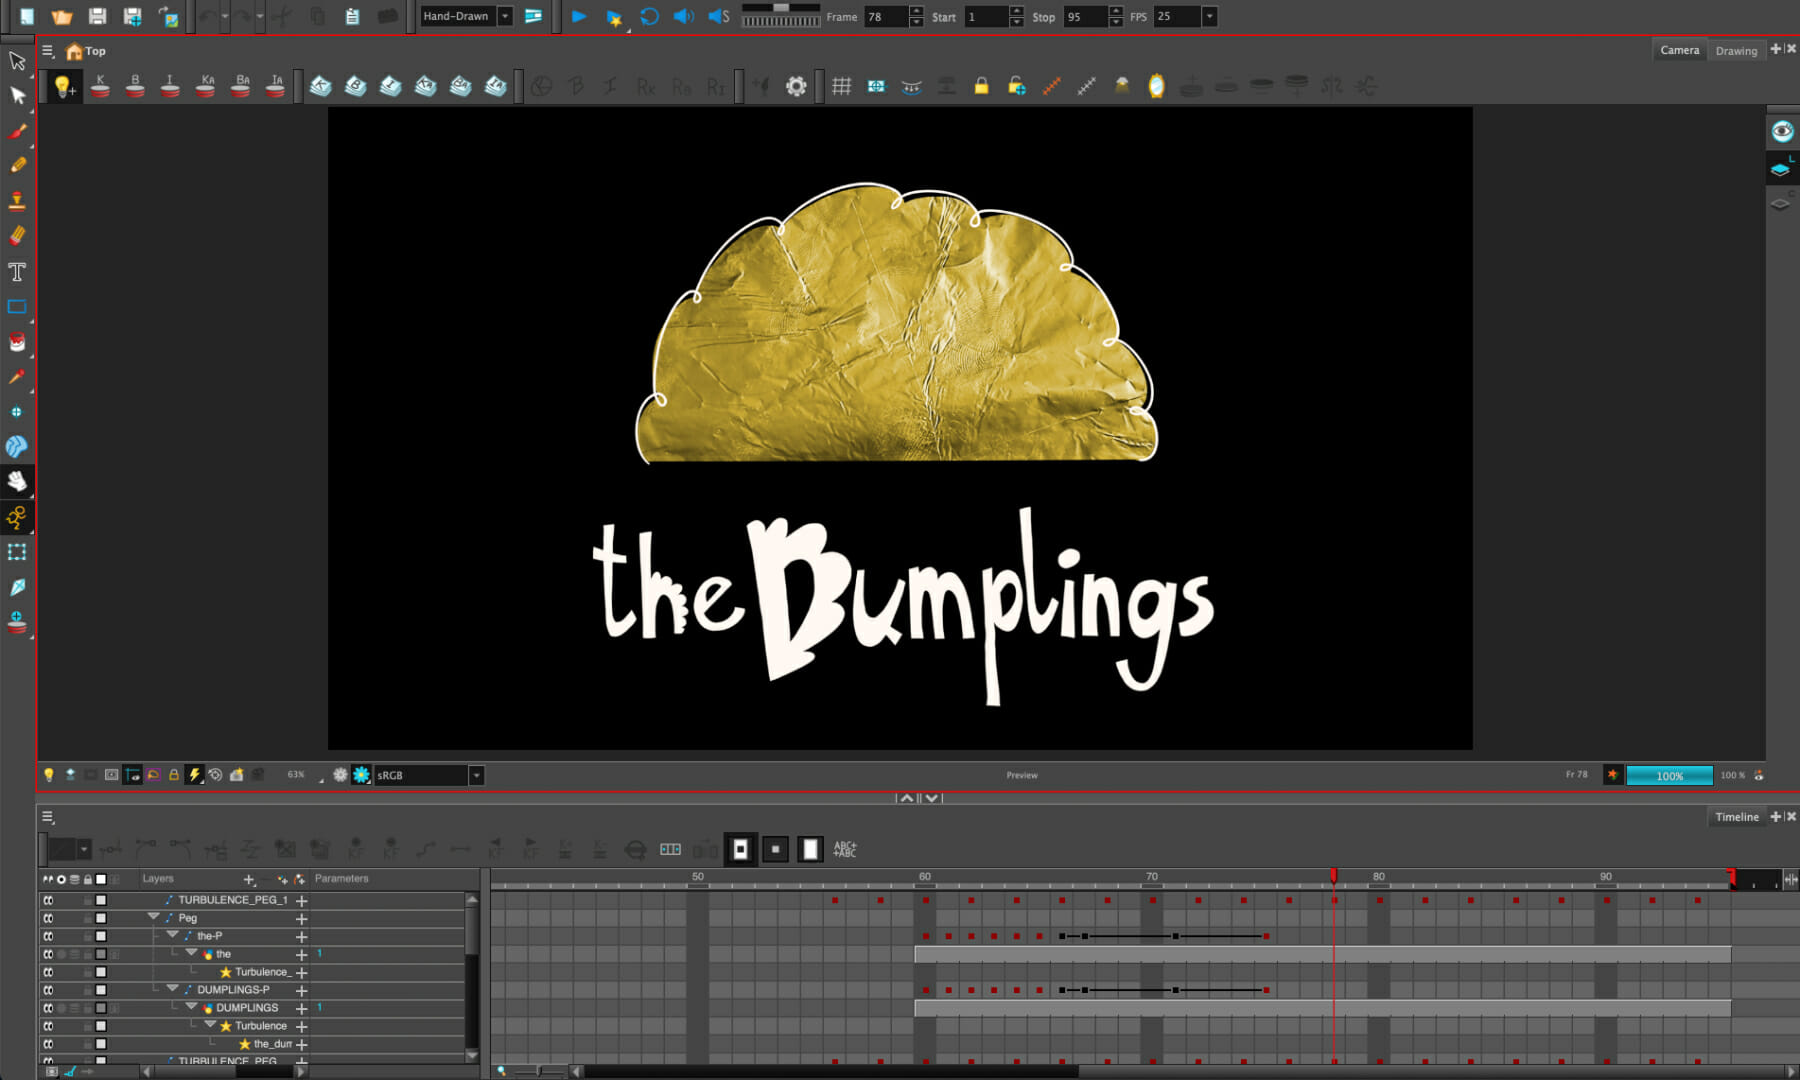 Scene created by Matteo Ciompallini for The Ingredients of Animation, featuring Polish dumplings.